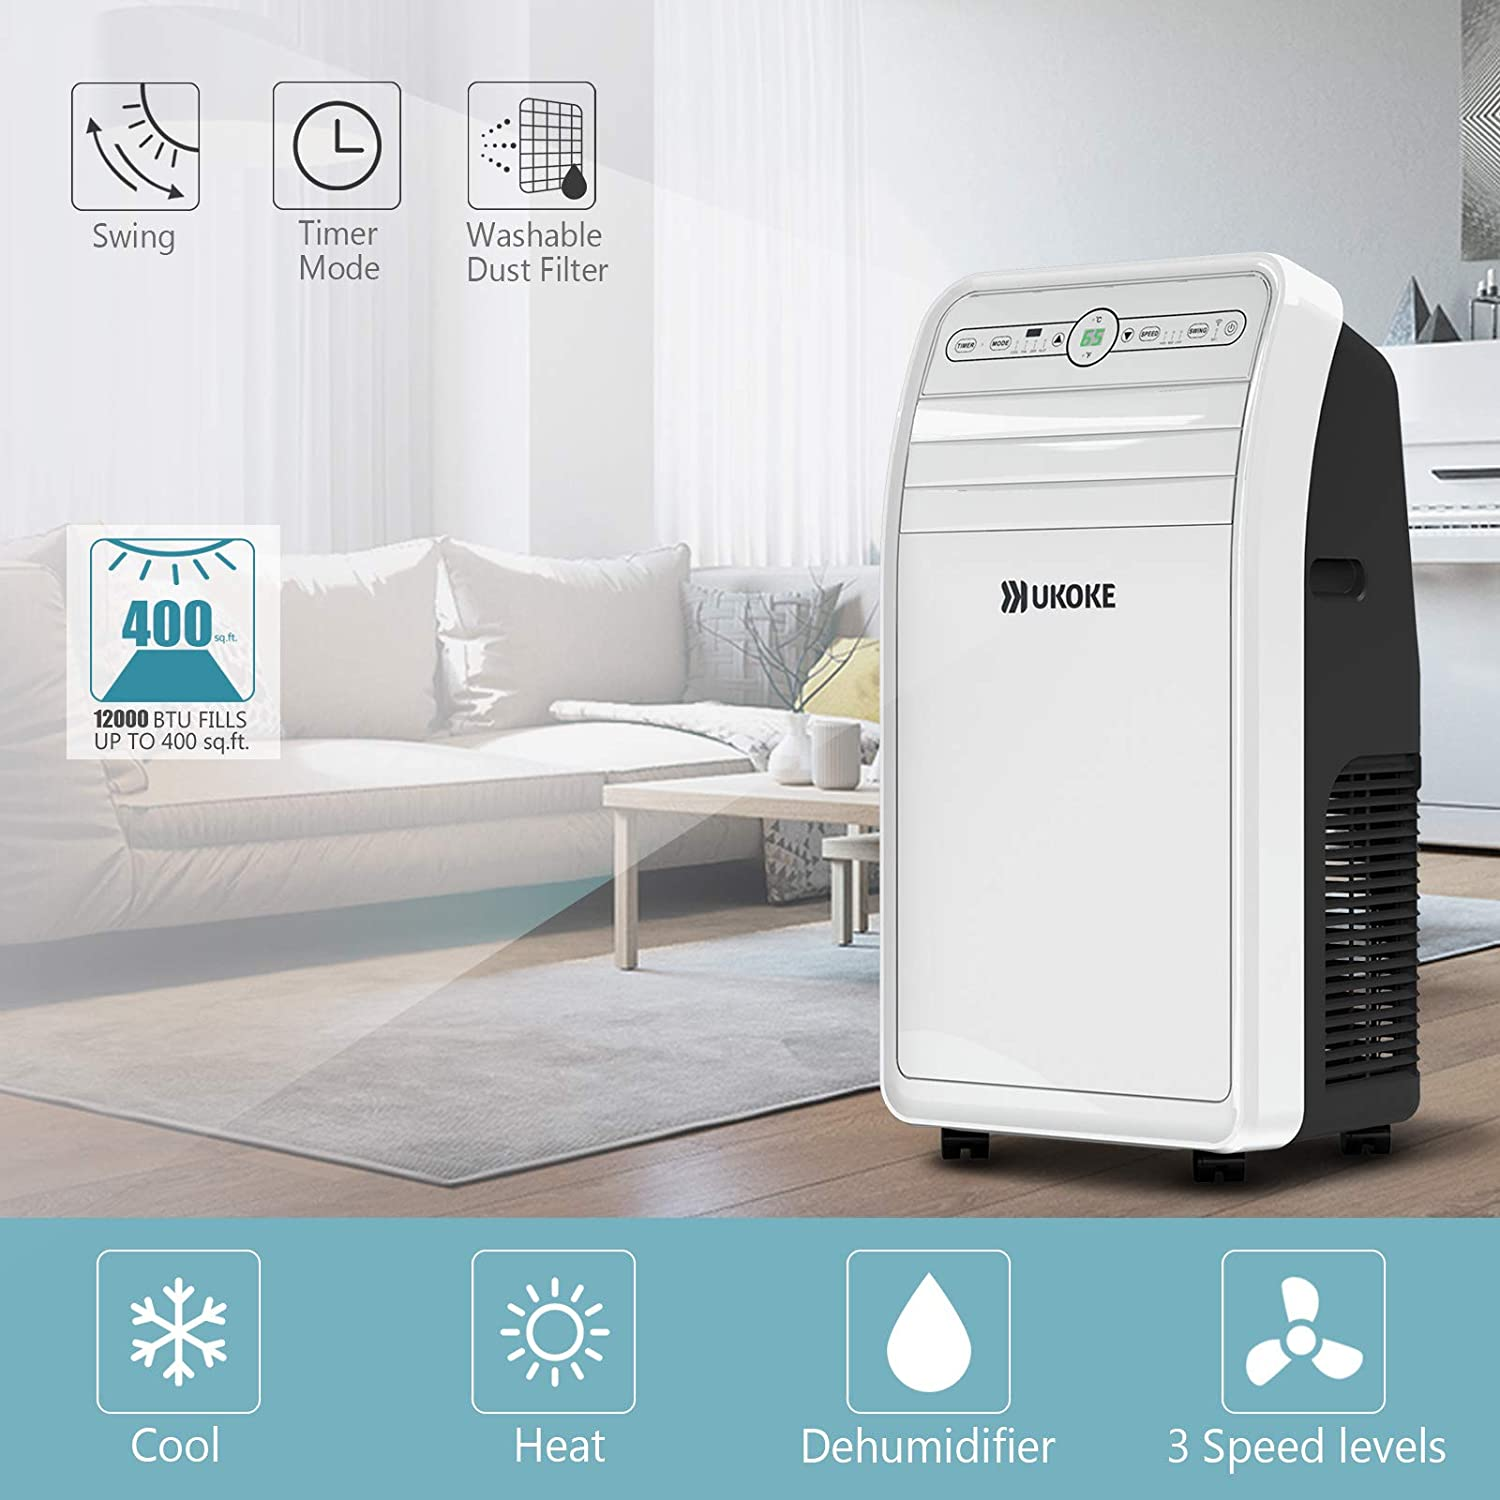 Ukoke USPC01W Smart Wifi Portable Air Conditioner, Works with Alexa Mobile App Control, 12000BTU, 4 in 1 AC Unit with Cool, Heat, Dehumidifier Fan, up to 400 Sq. ft